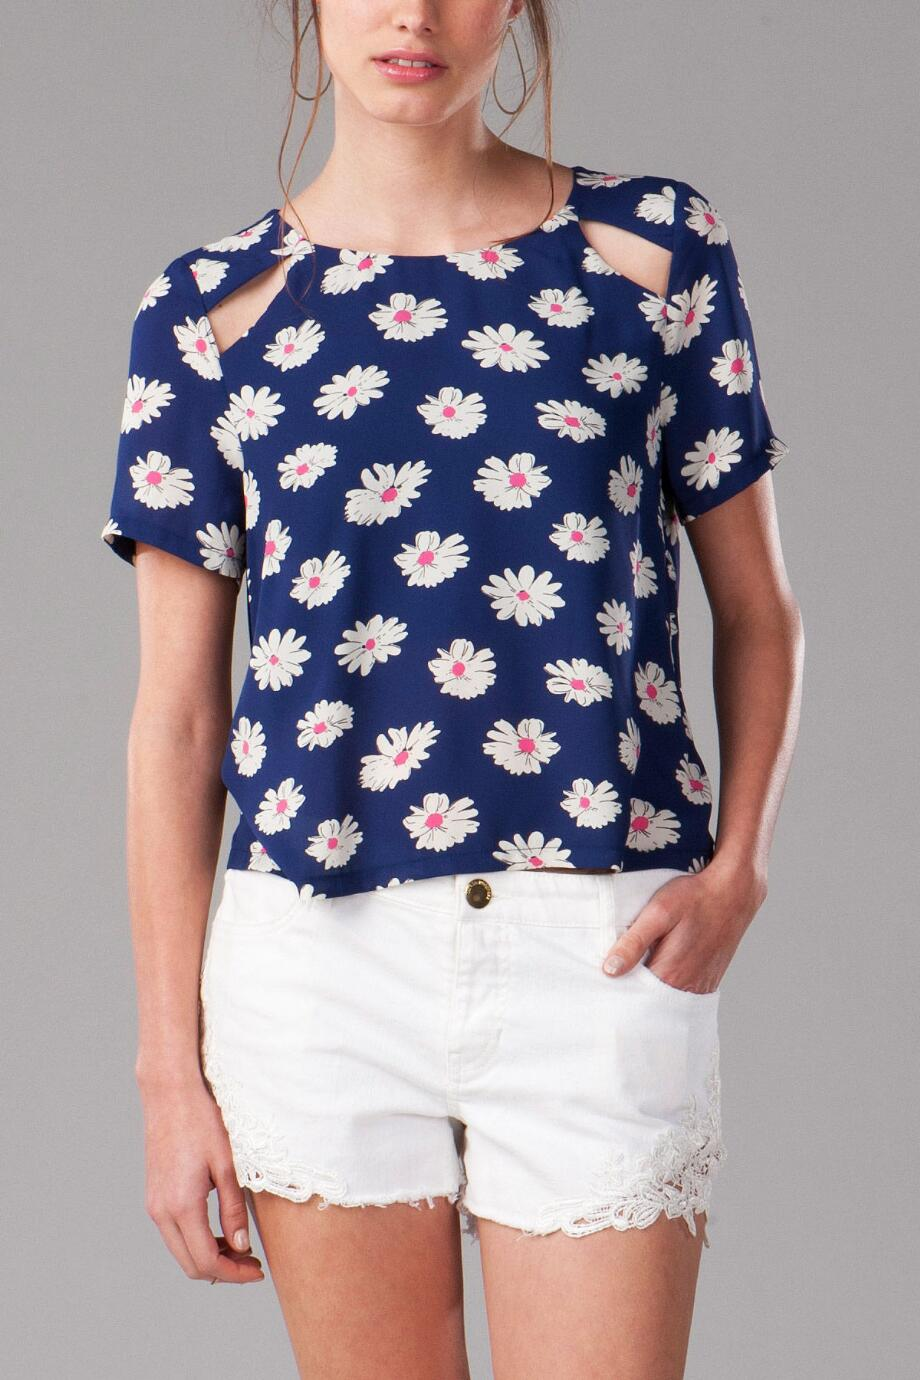 Tarrallton Floral Crop Top